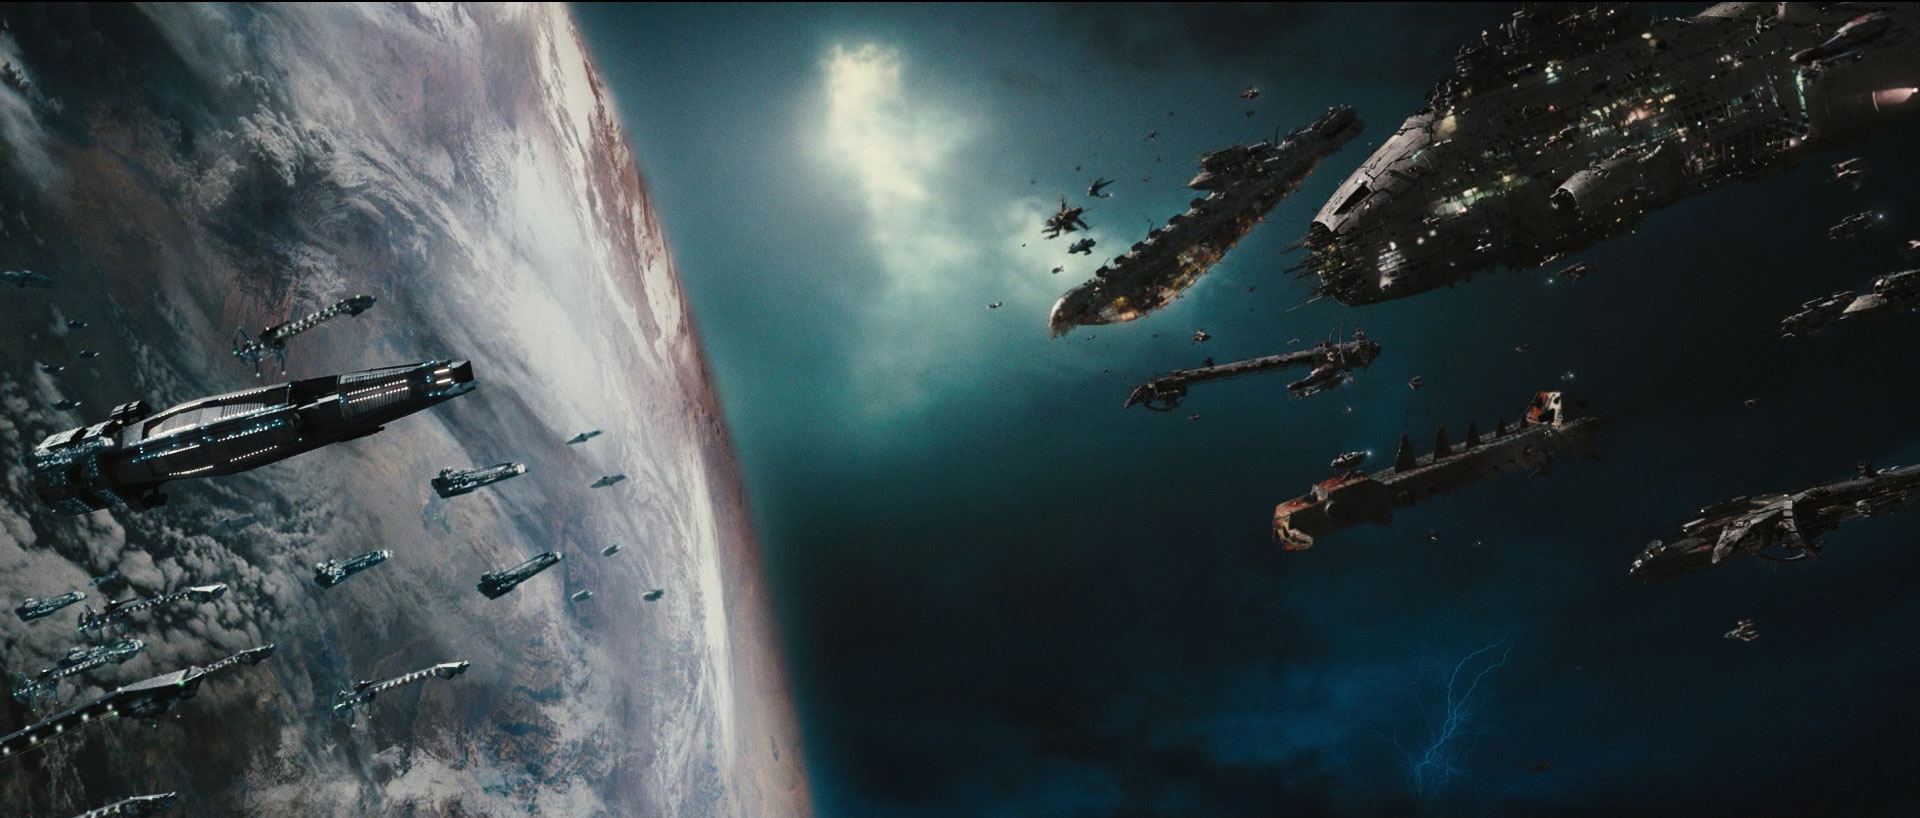 1920x818 - Space Invasion Wallpapers 20